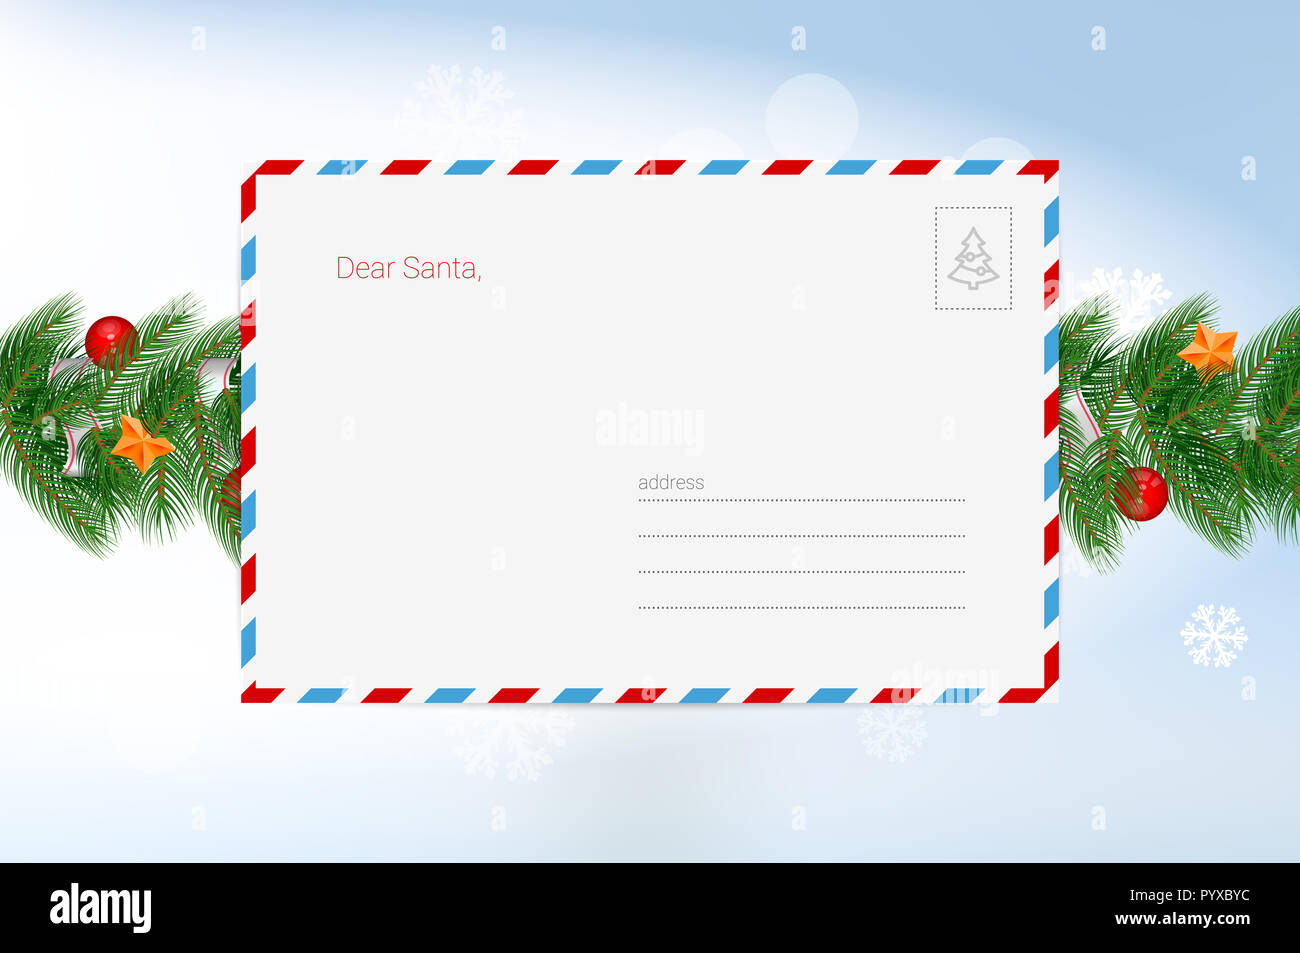 Santa Claus Letter. Christmas Greeting Card Template. Merry Christmas and Happy New Year Design Elements. Resource for Creating Postcards, Calendars o - Stock Image